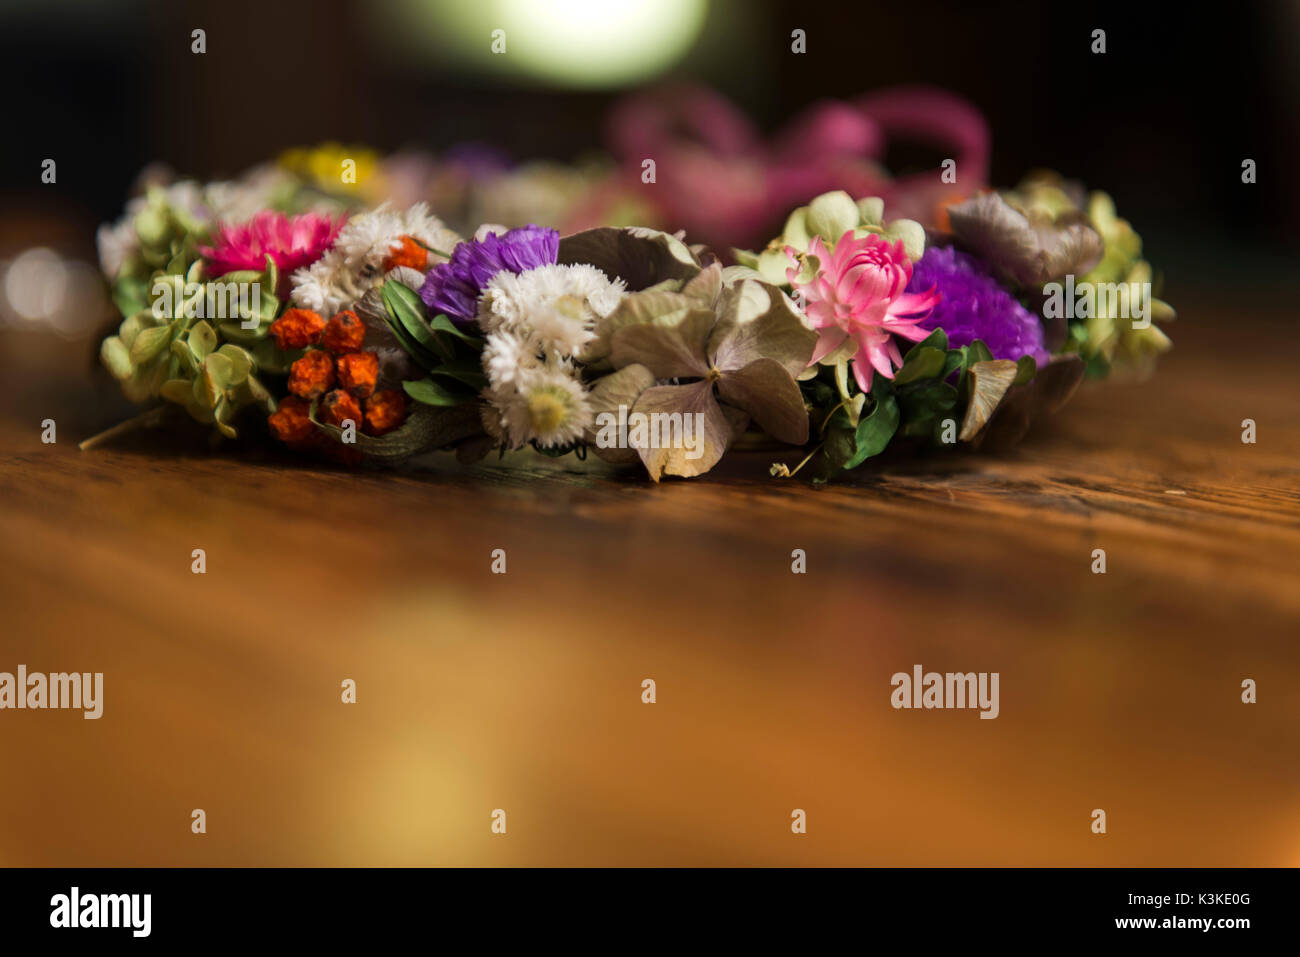 Floral wreath with dry flowers - Stock Image